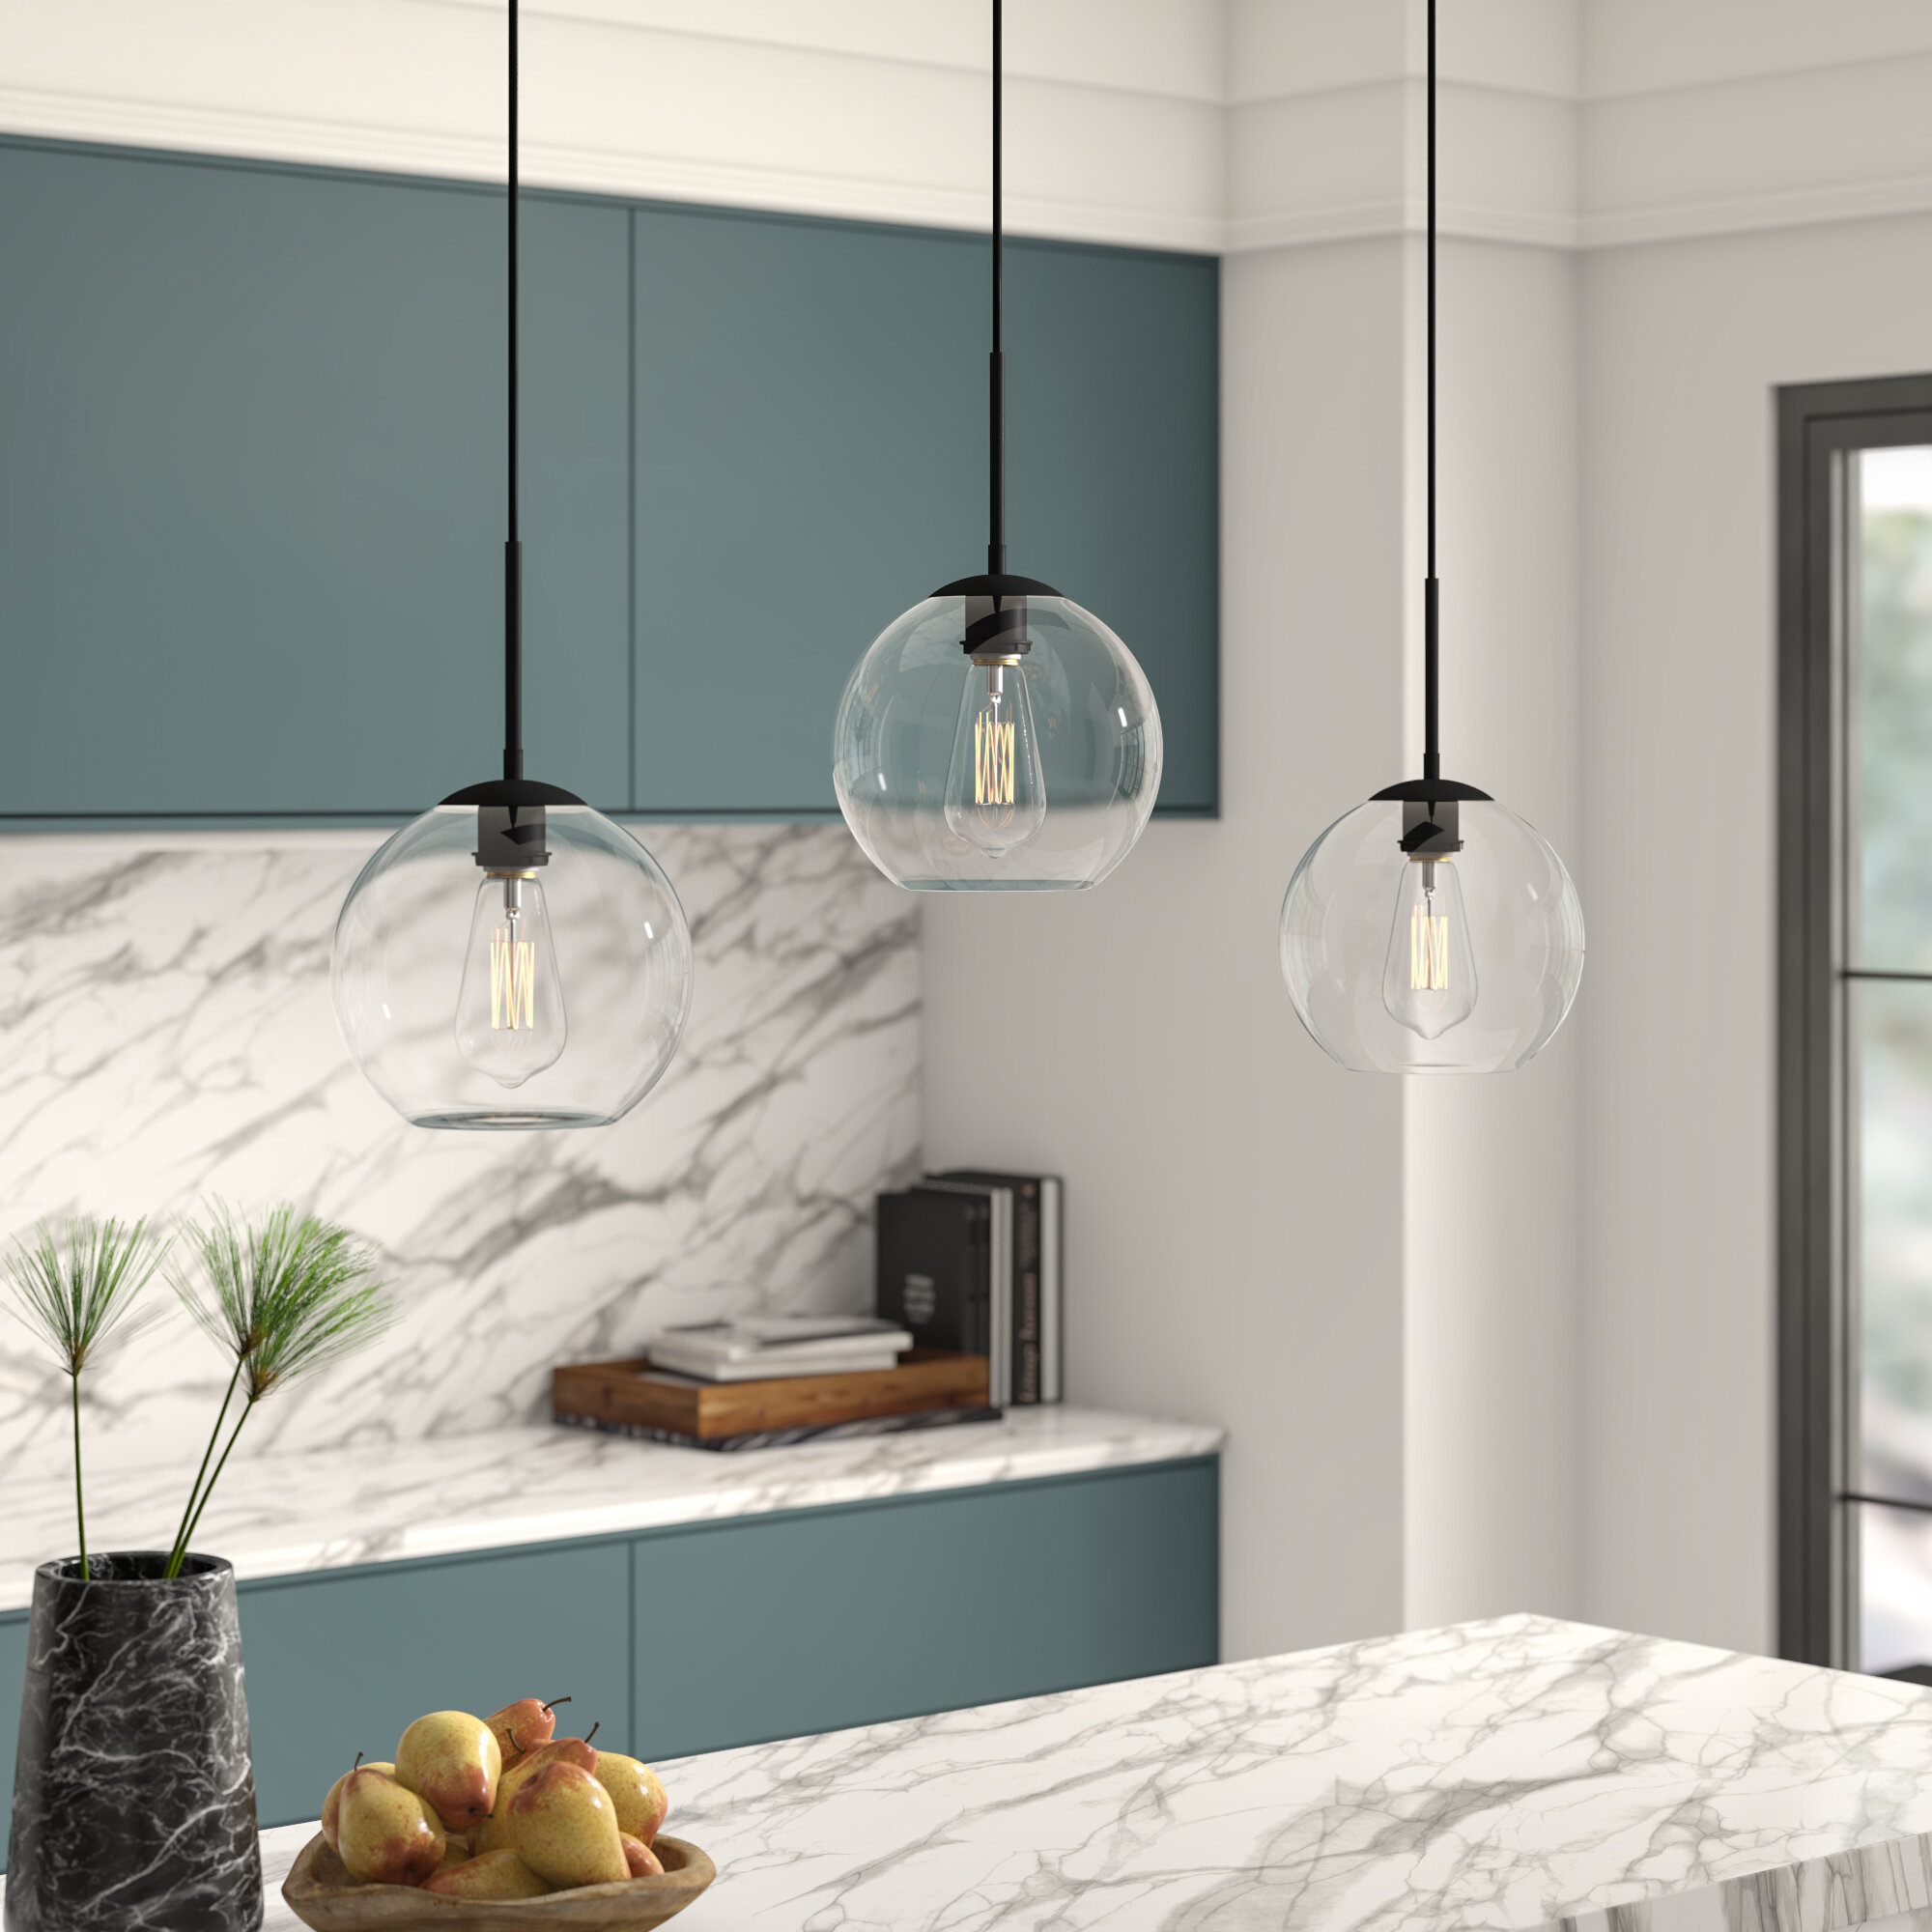 "Black Mini (Less Than 10"" Wide) Pendant Lighting You'll Love for Schutt 4-Light Kitchen Island Pendants (Image 4 of 30)"